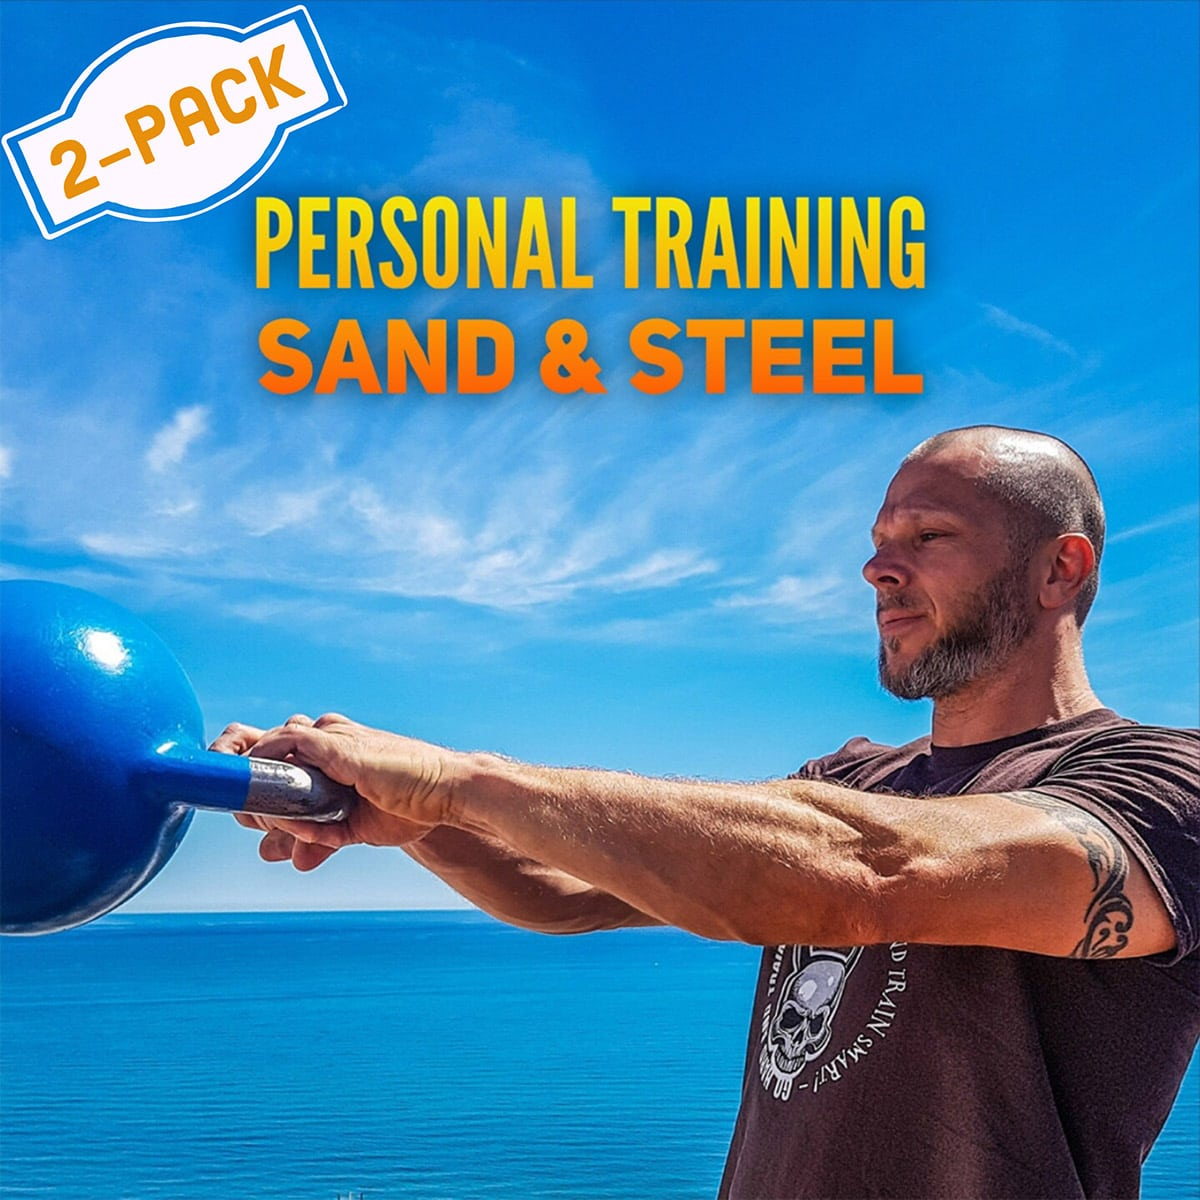 Personal Trainer 2 Pack